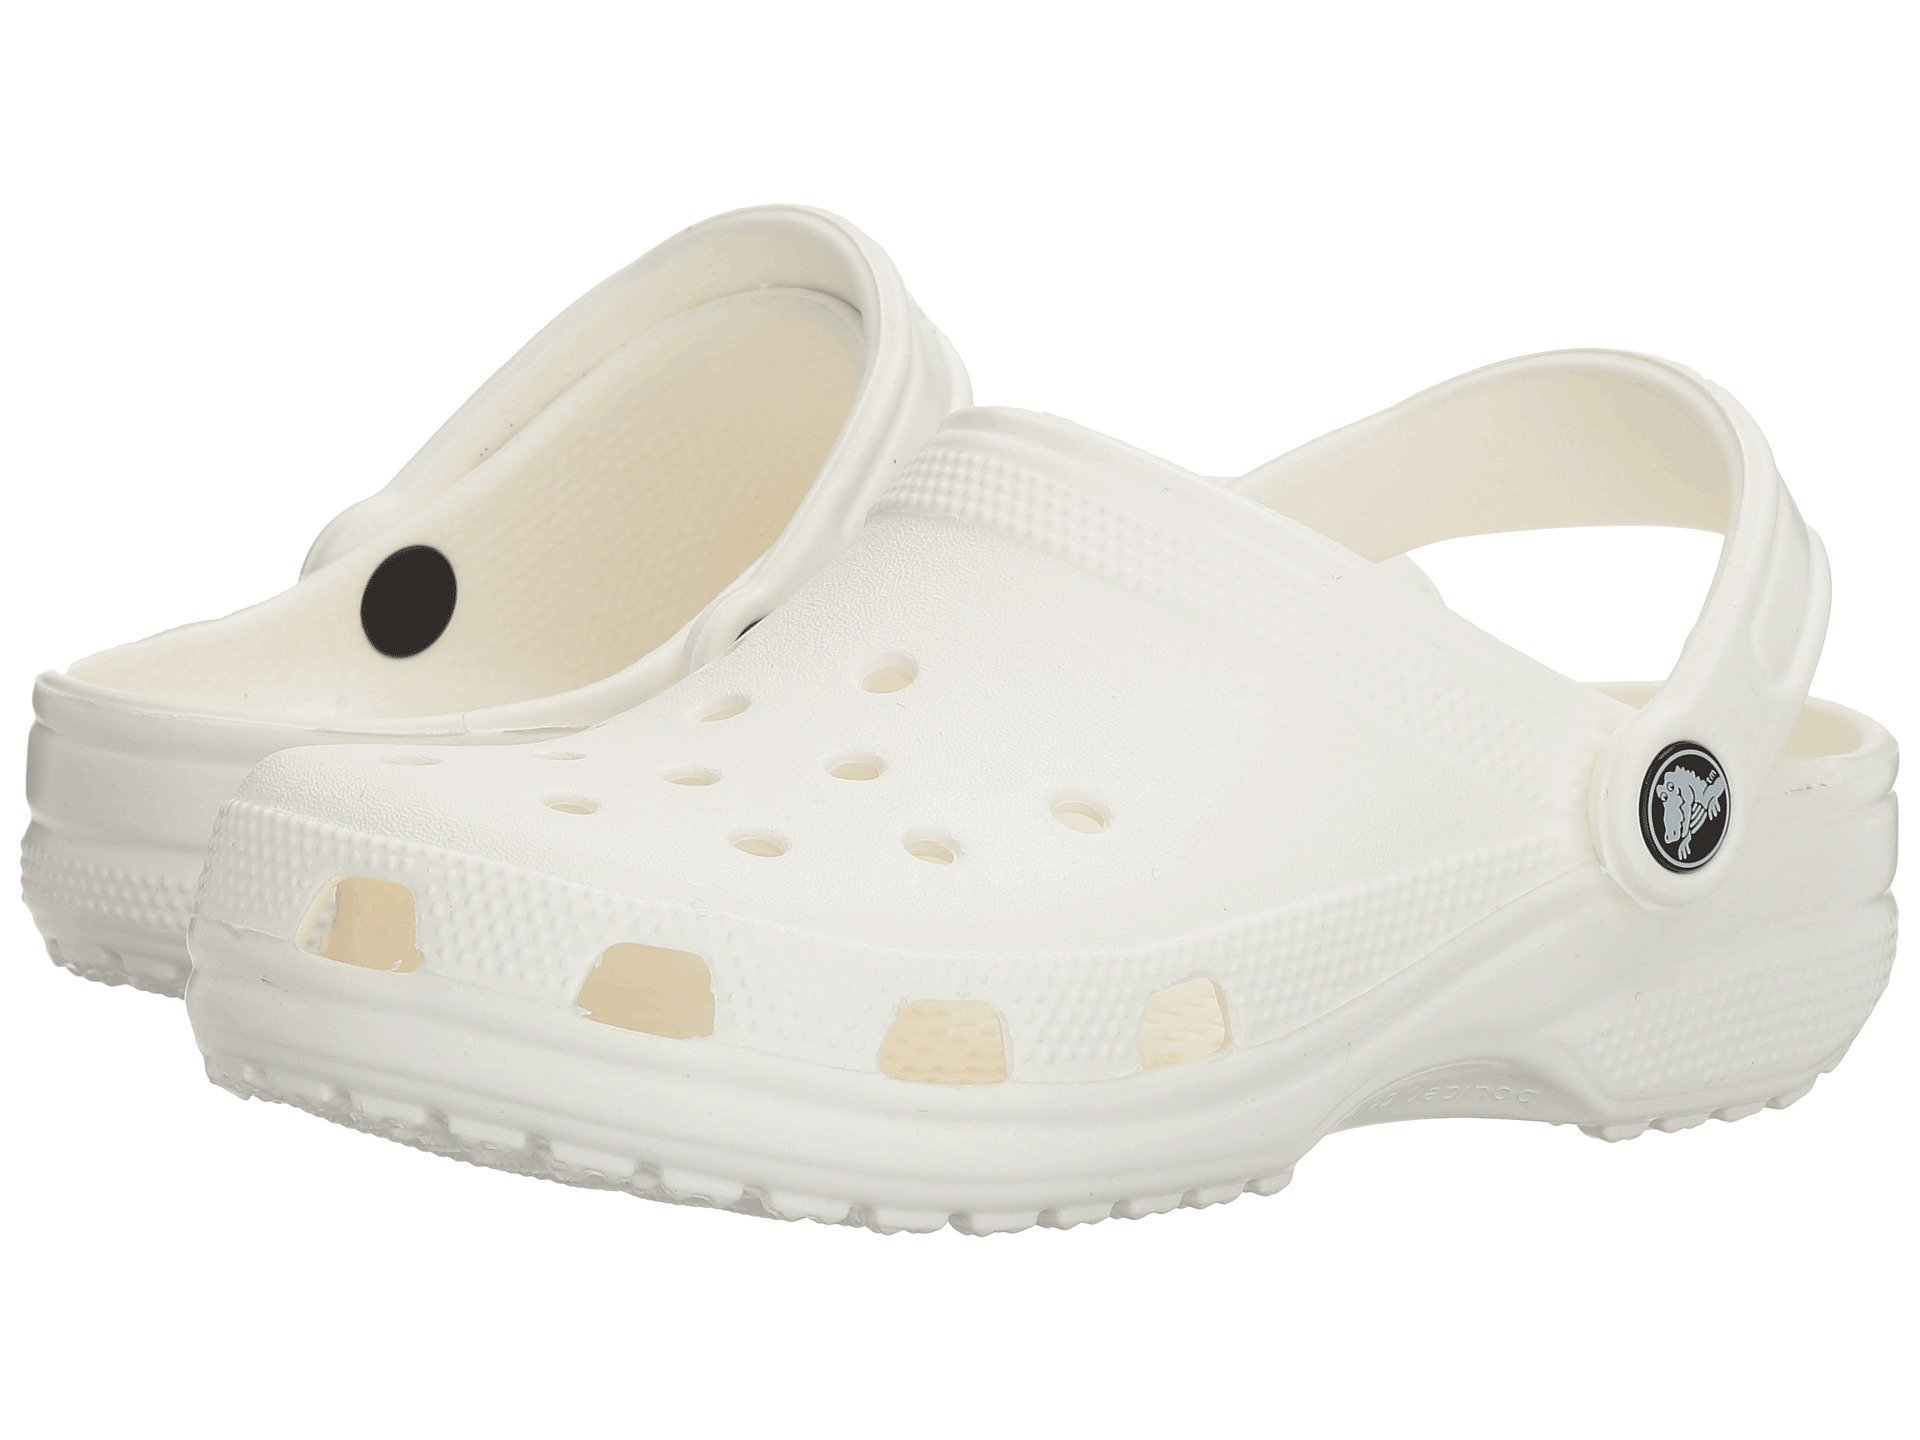 Crocs Classic Mule White - 6 US Men/ 8 US Women M US